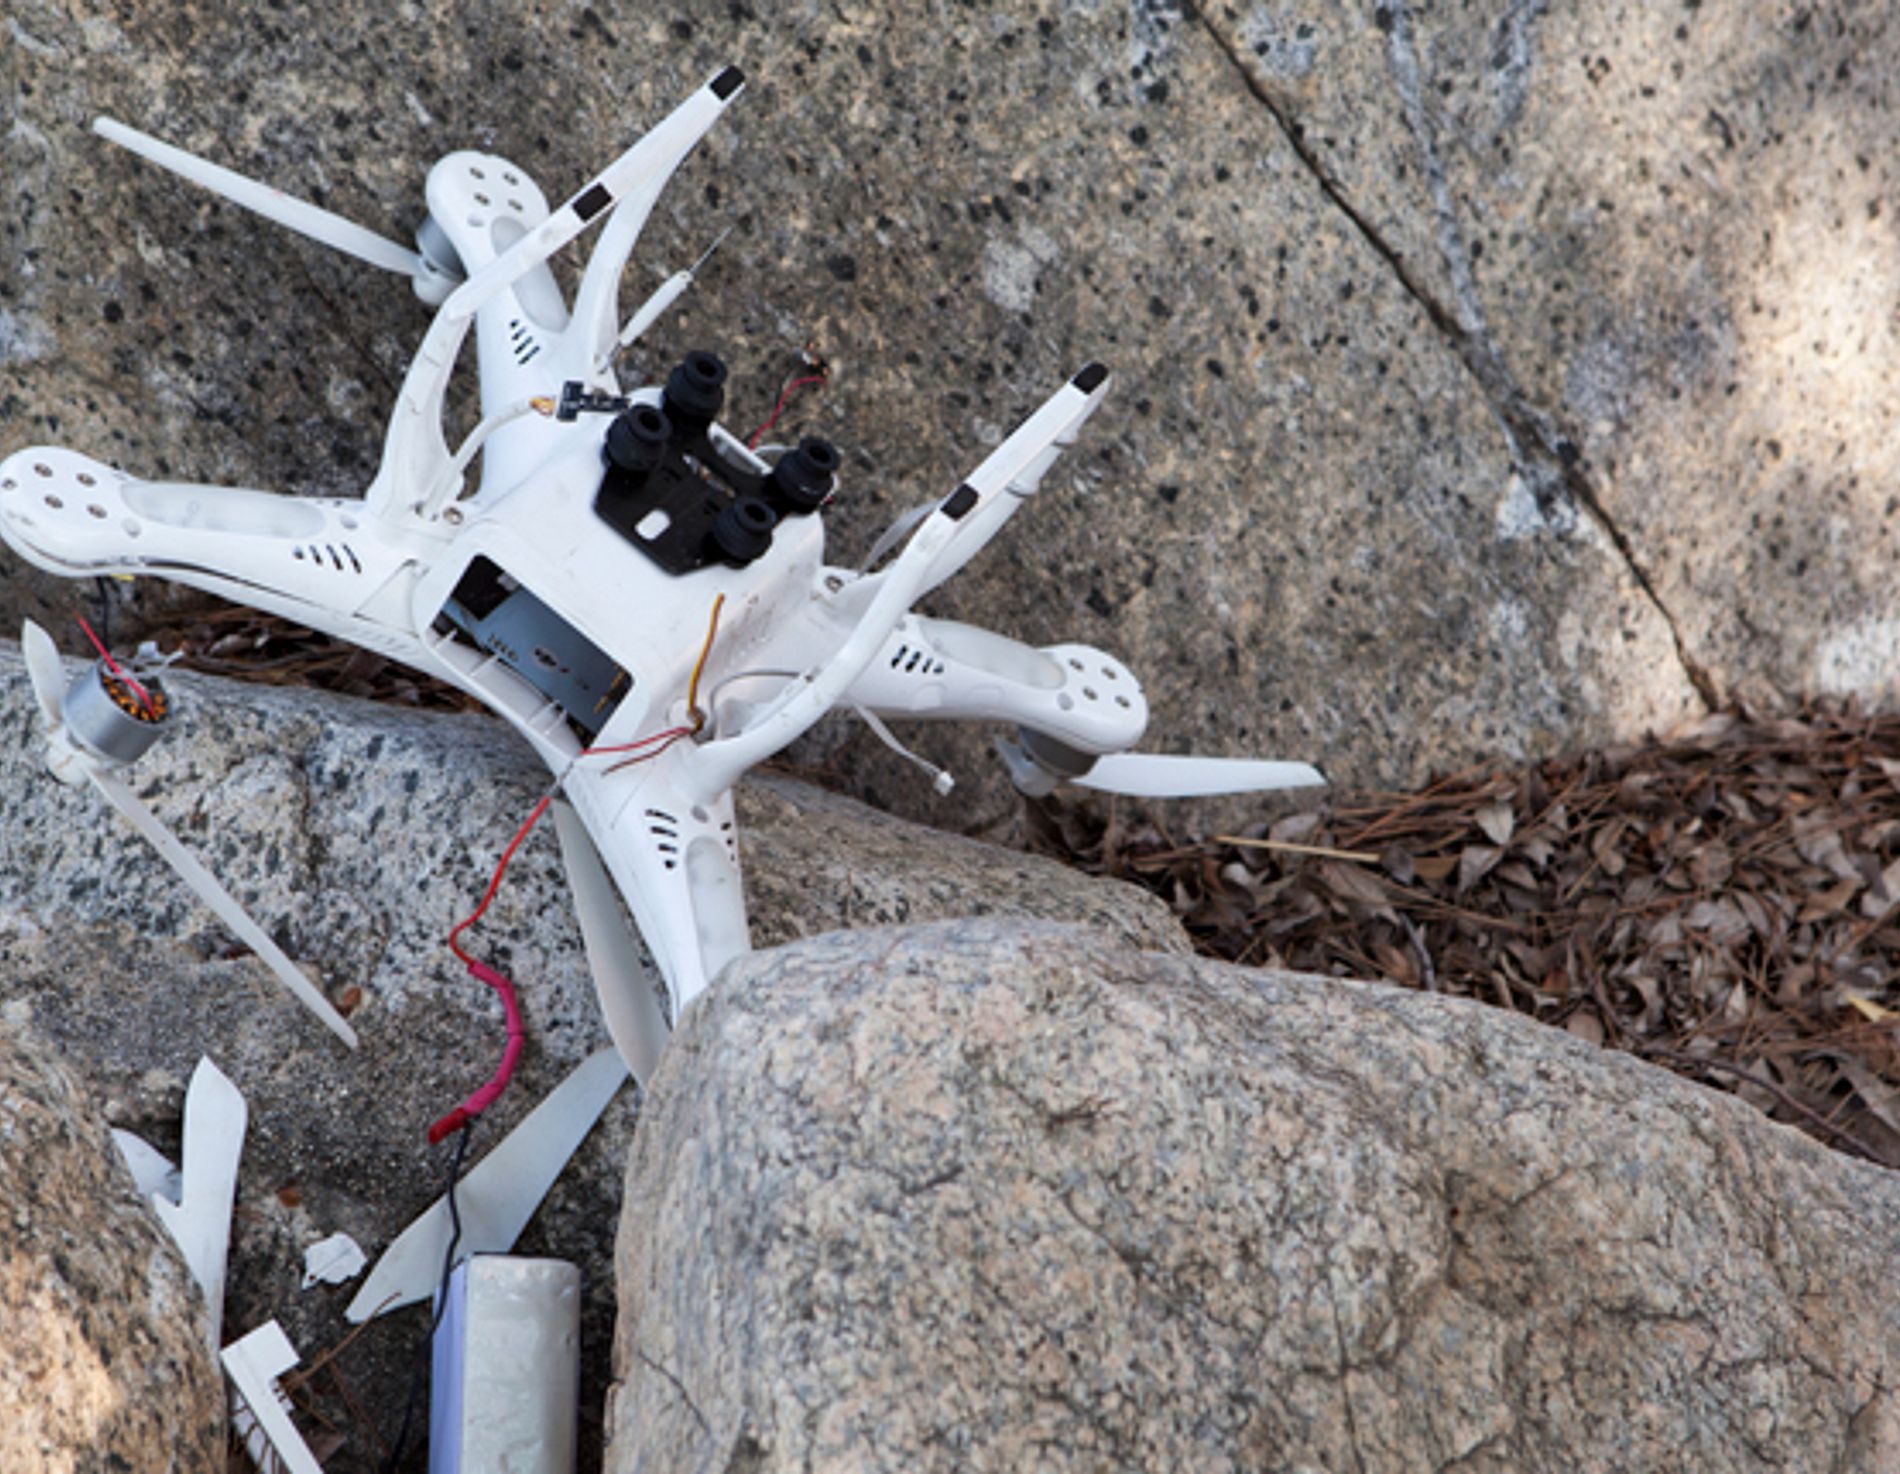 Crashed drone laying on rocks